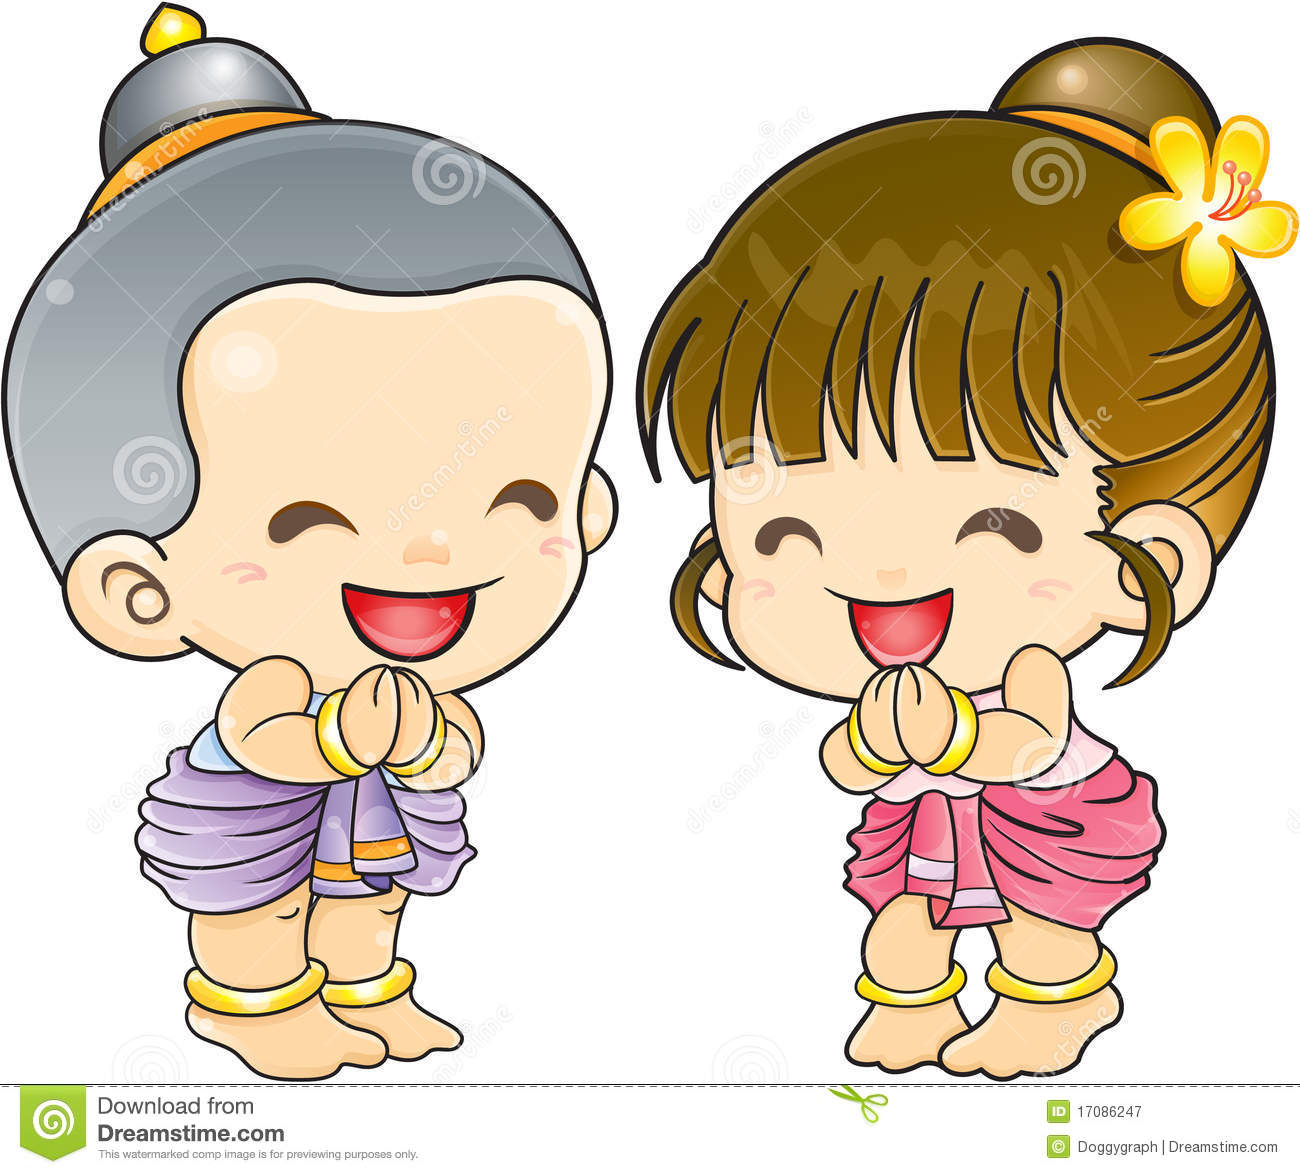 Thailand clipart #8, Download drawings